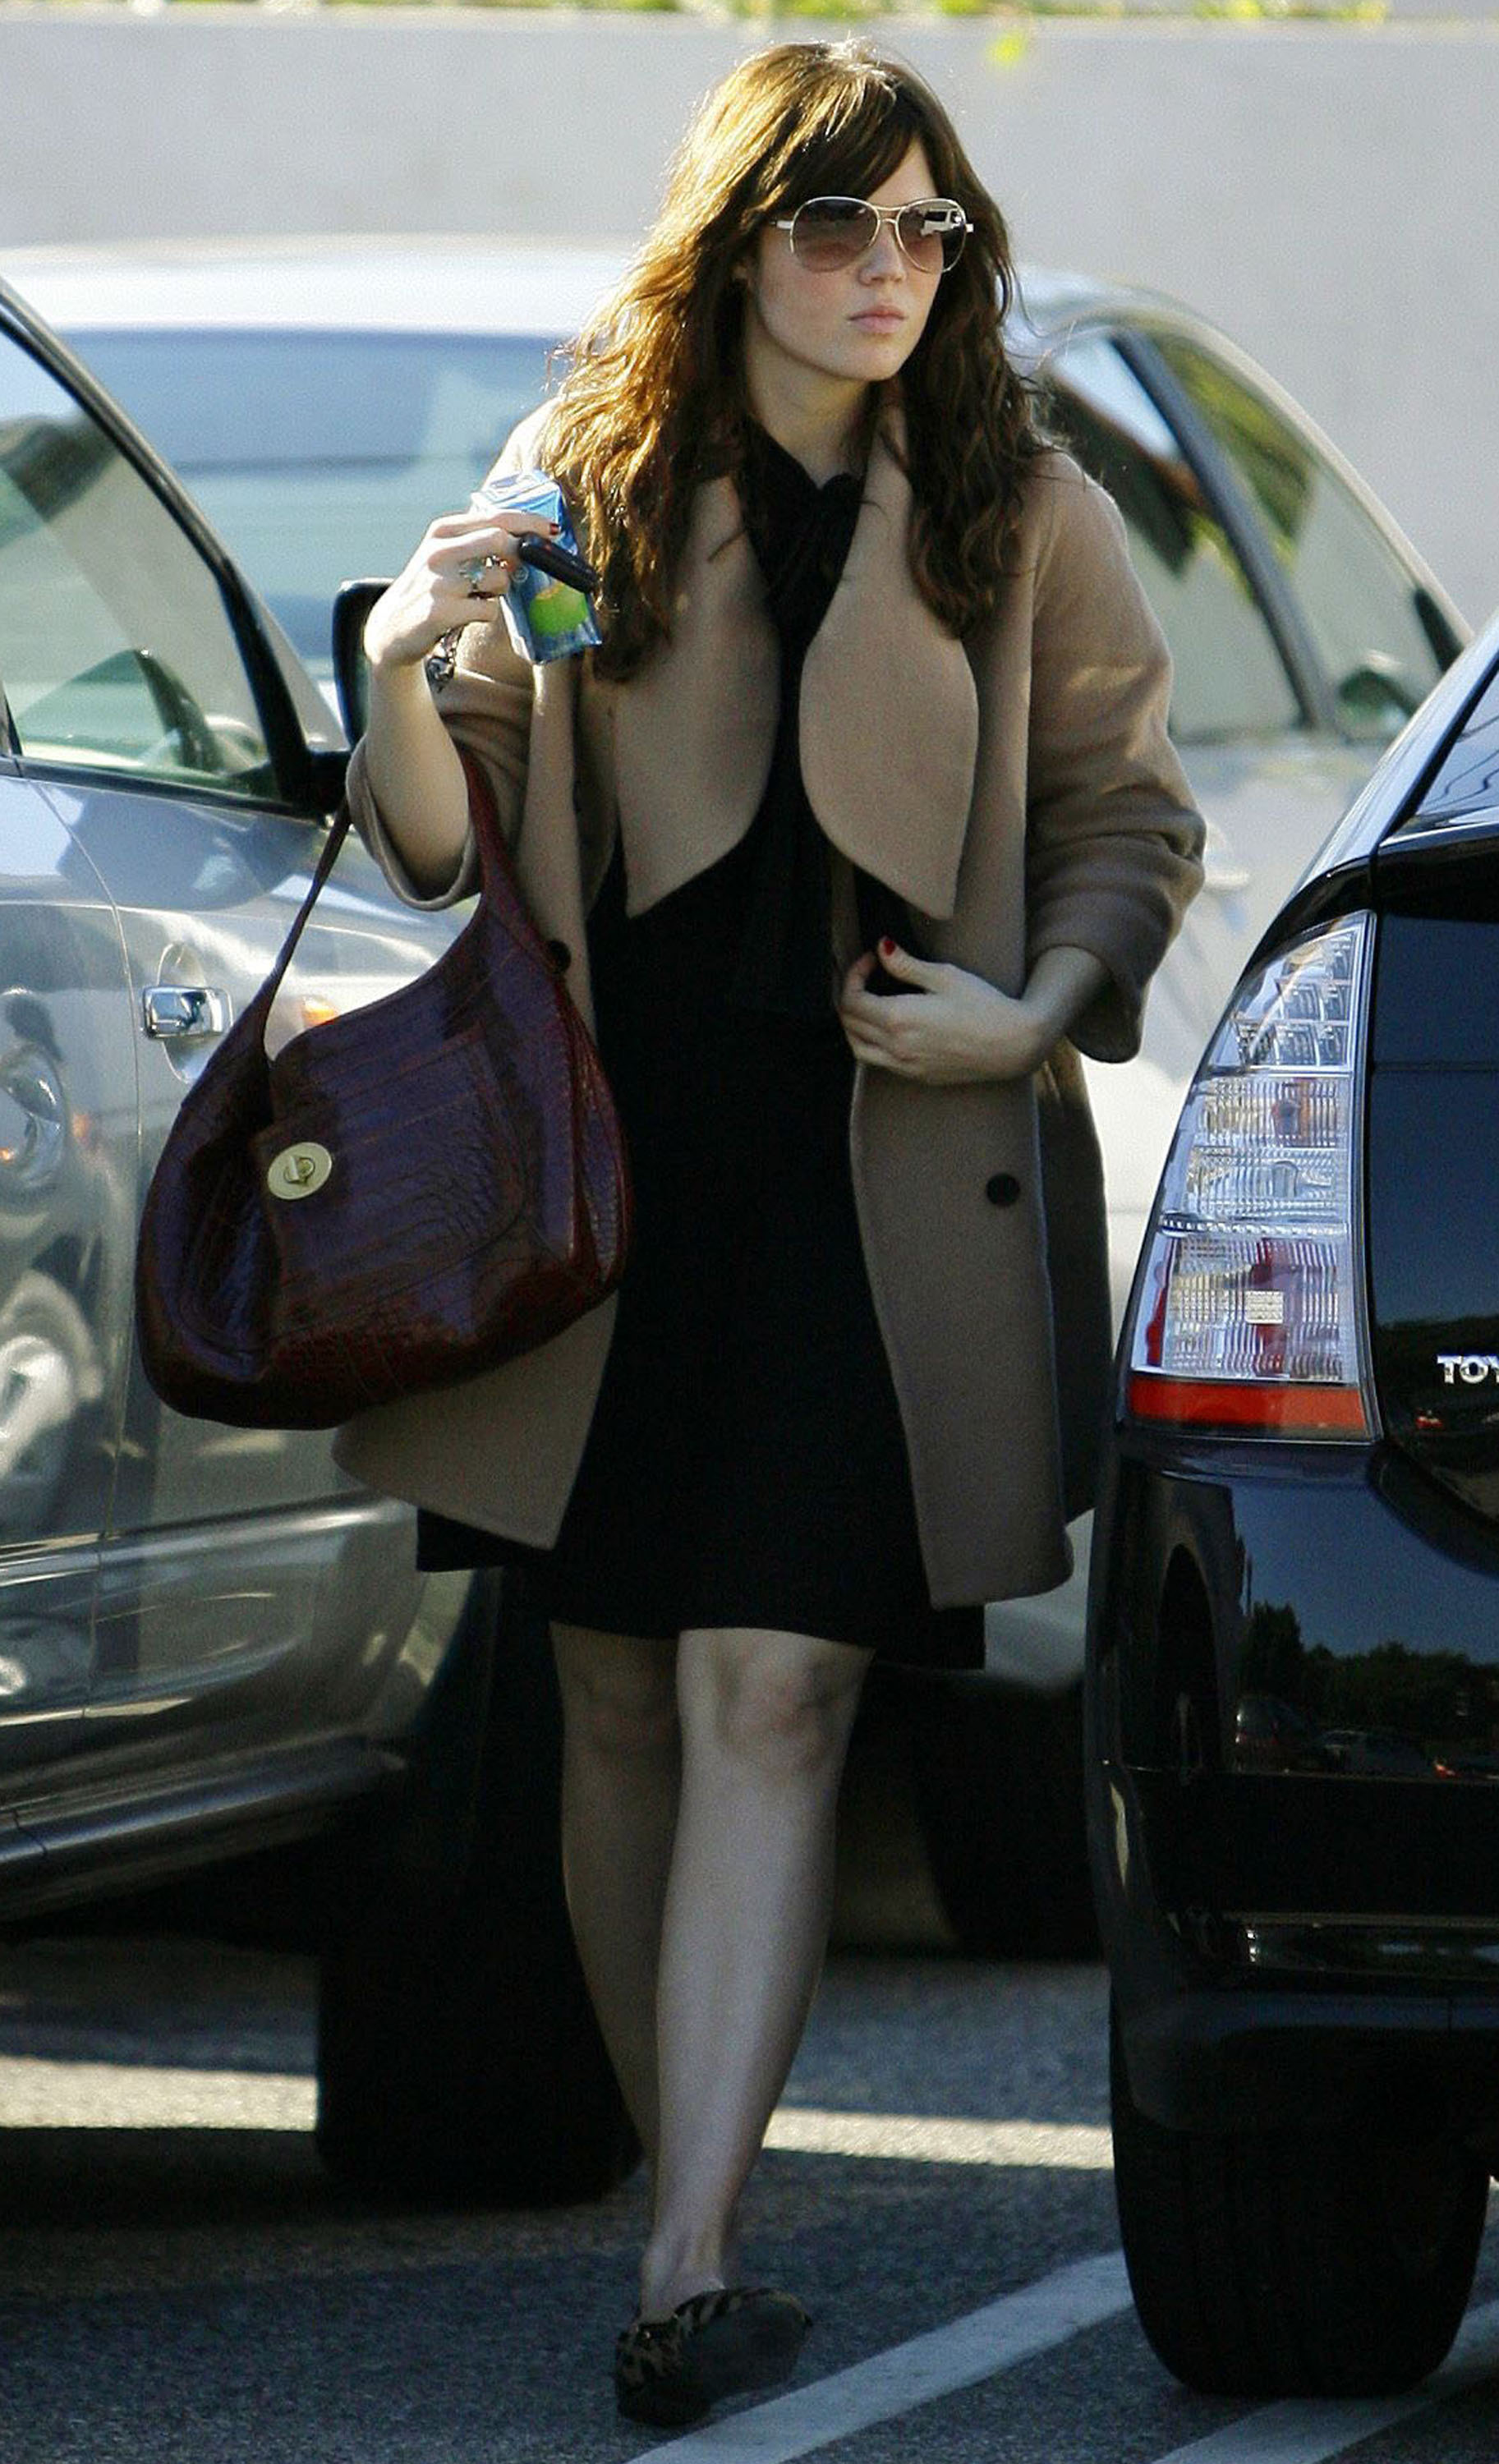 68019_celeb-city.eu_Mandy_Moore_out_and_about_in_West_Hollywood_10.12.2007_22_122_636lo.jpg